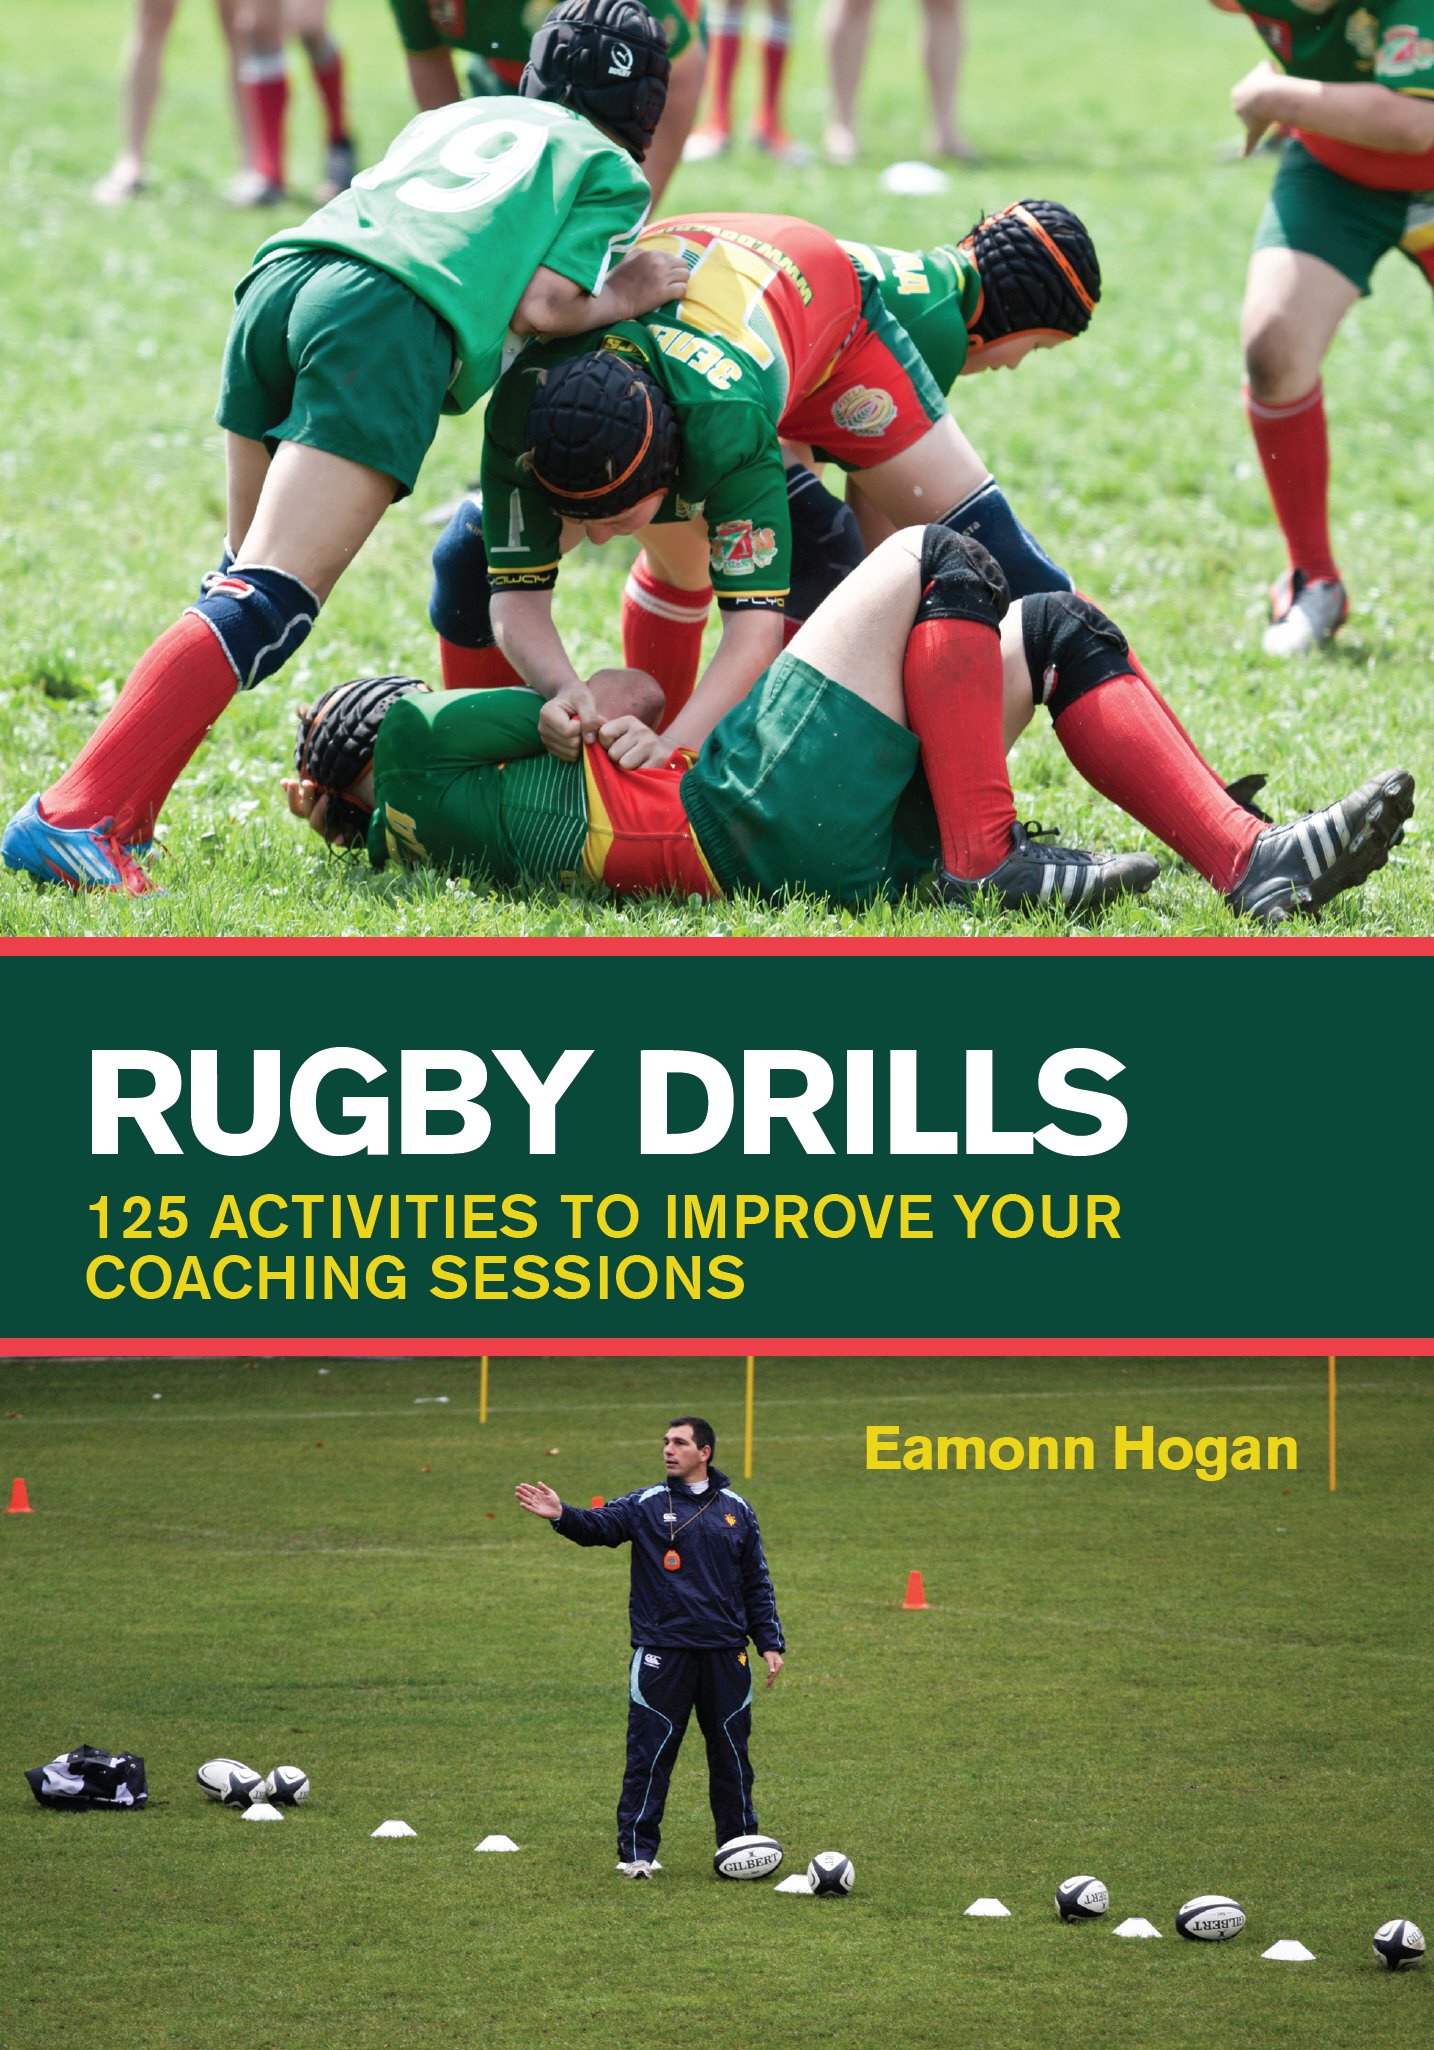 Download Rugby Drills: 125 Activities To Improve Your Coaching Sessions 